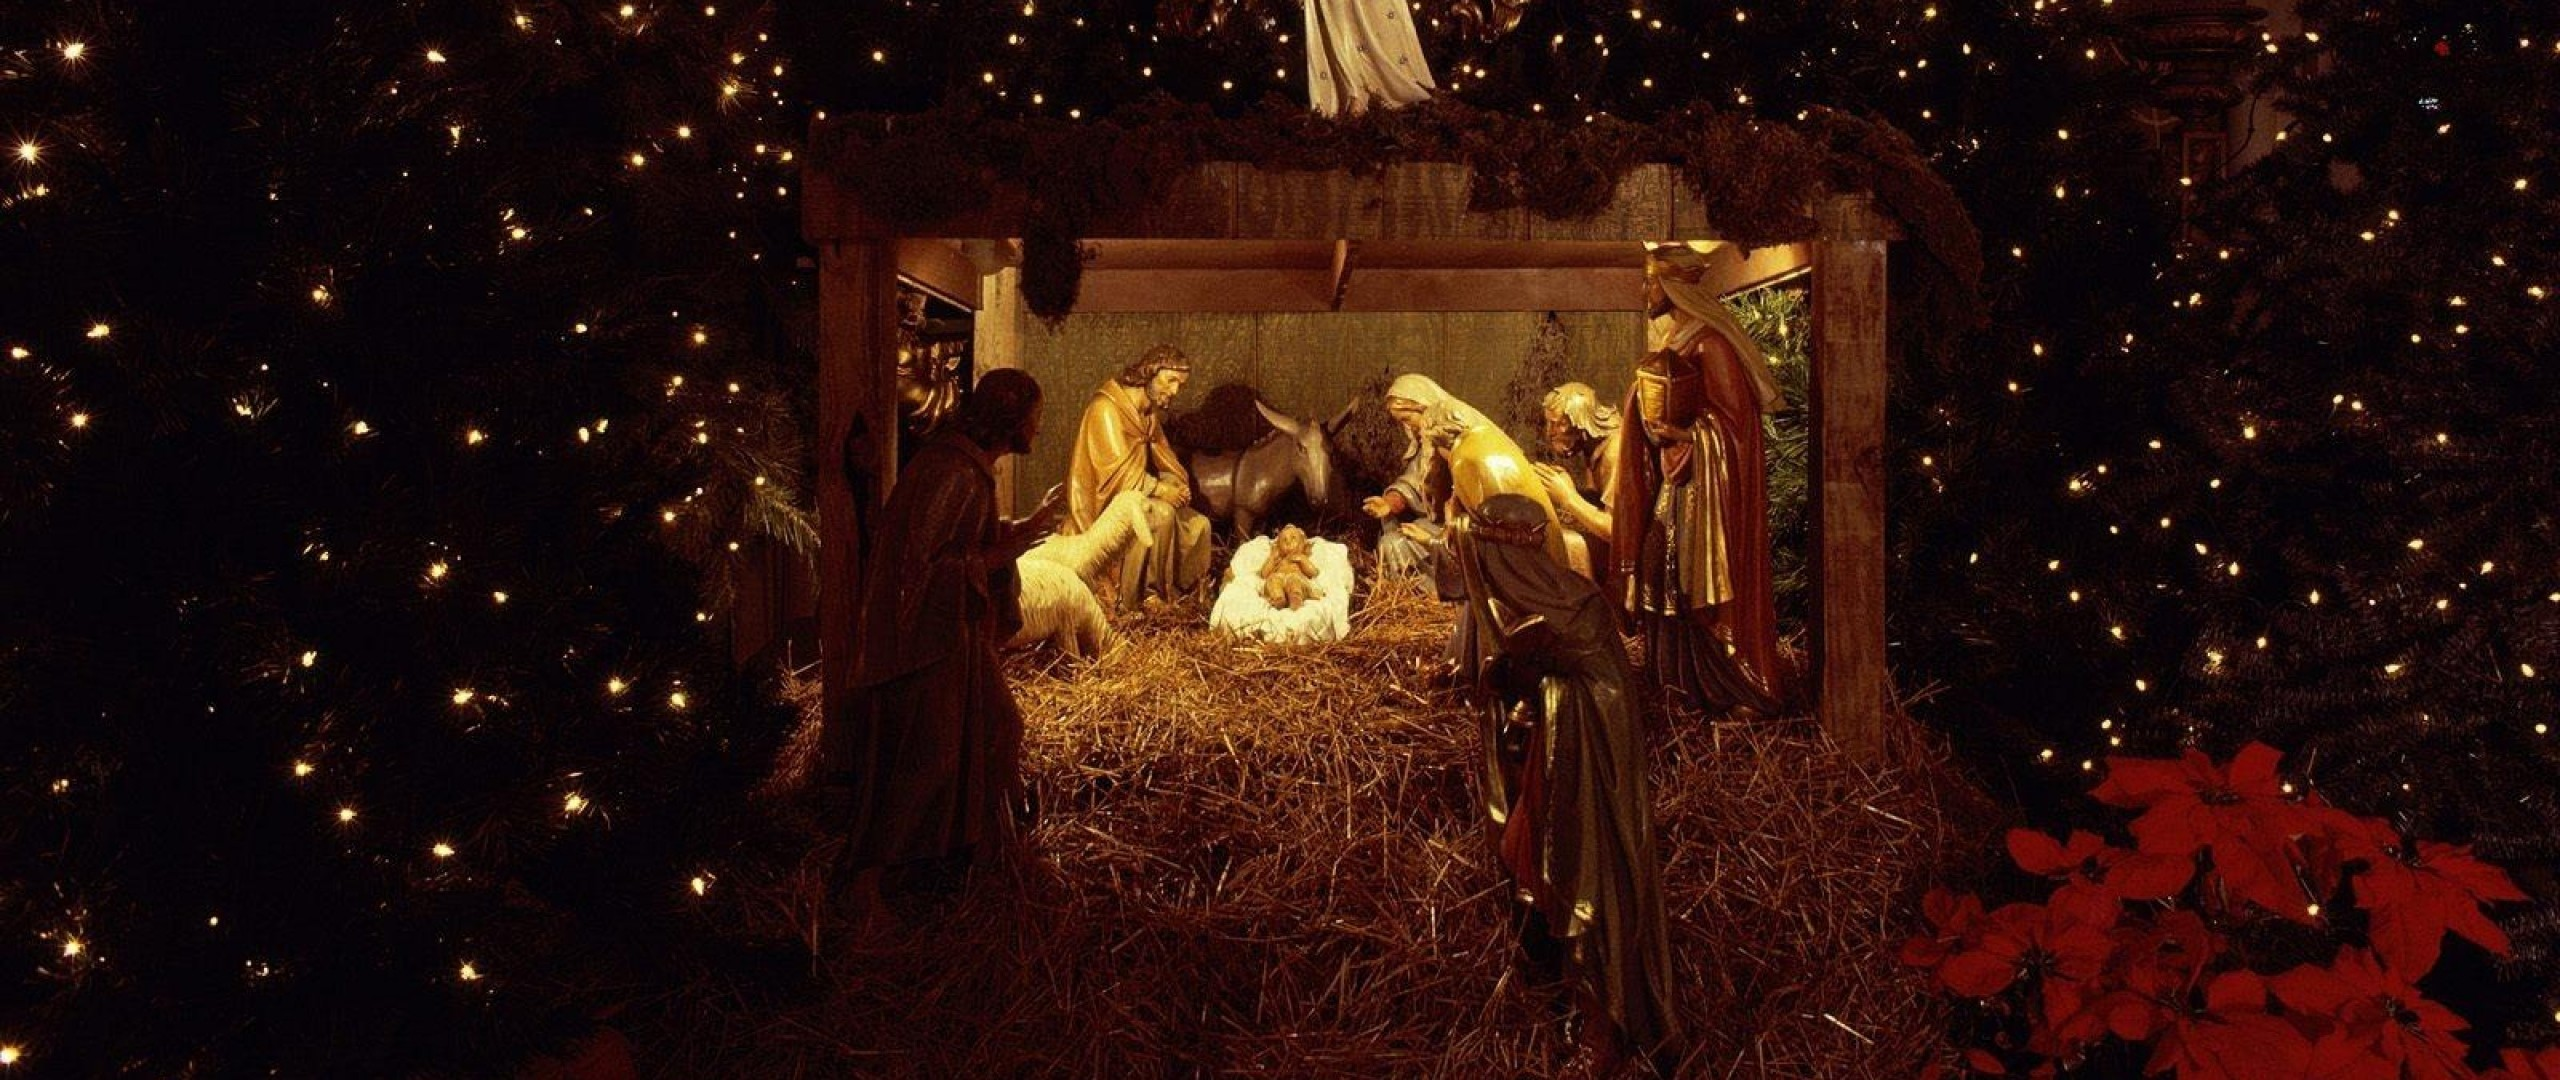 nativity christmas wallpaper  60  images